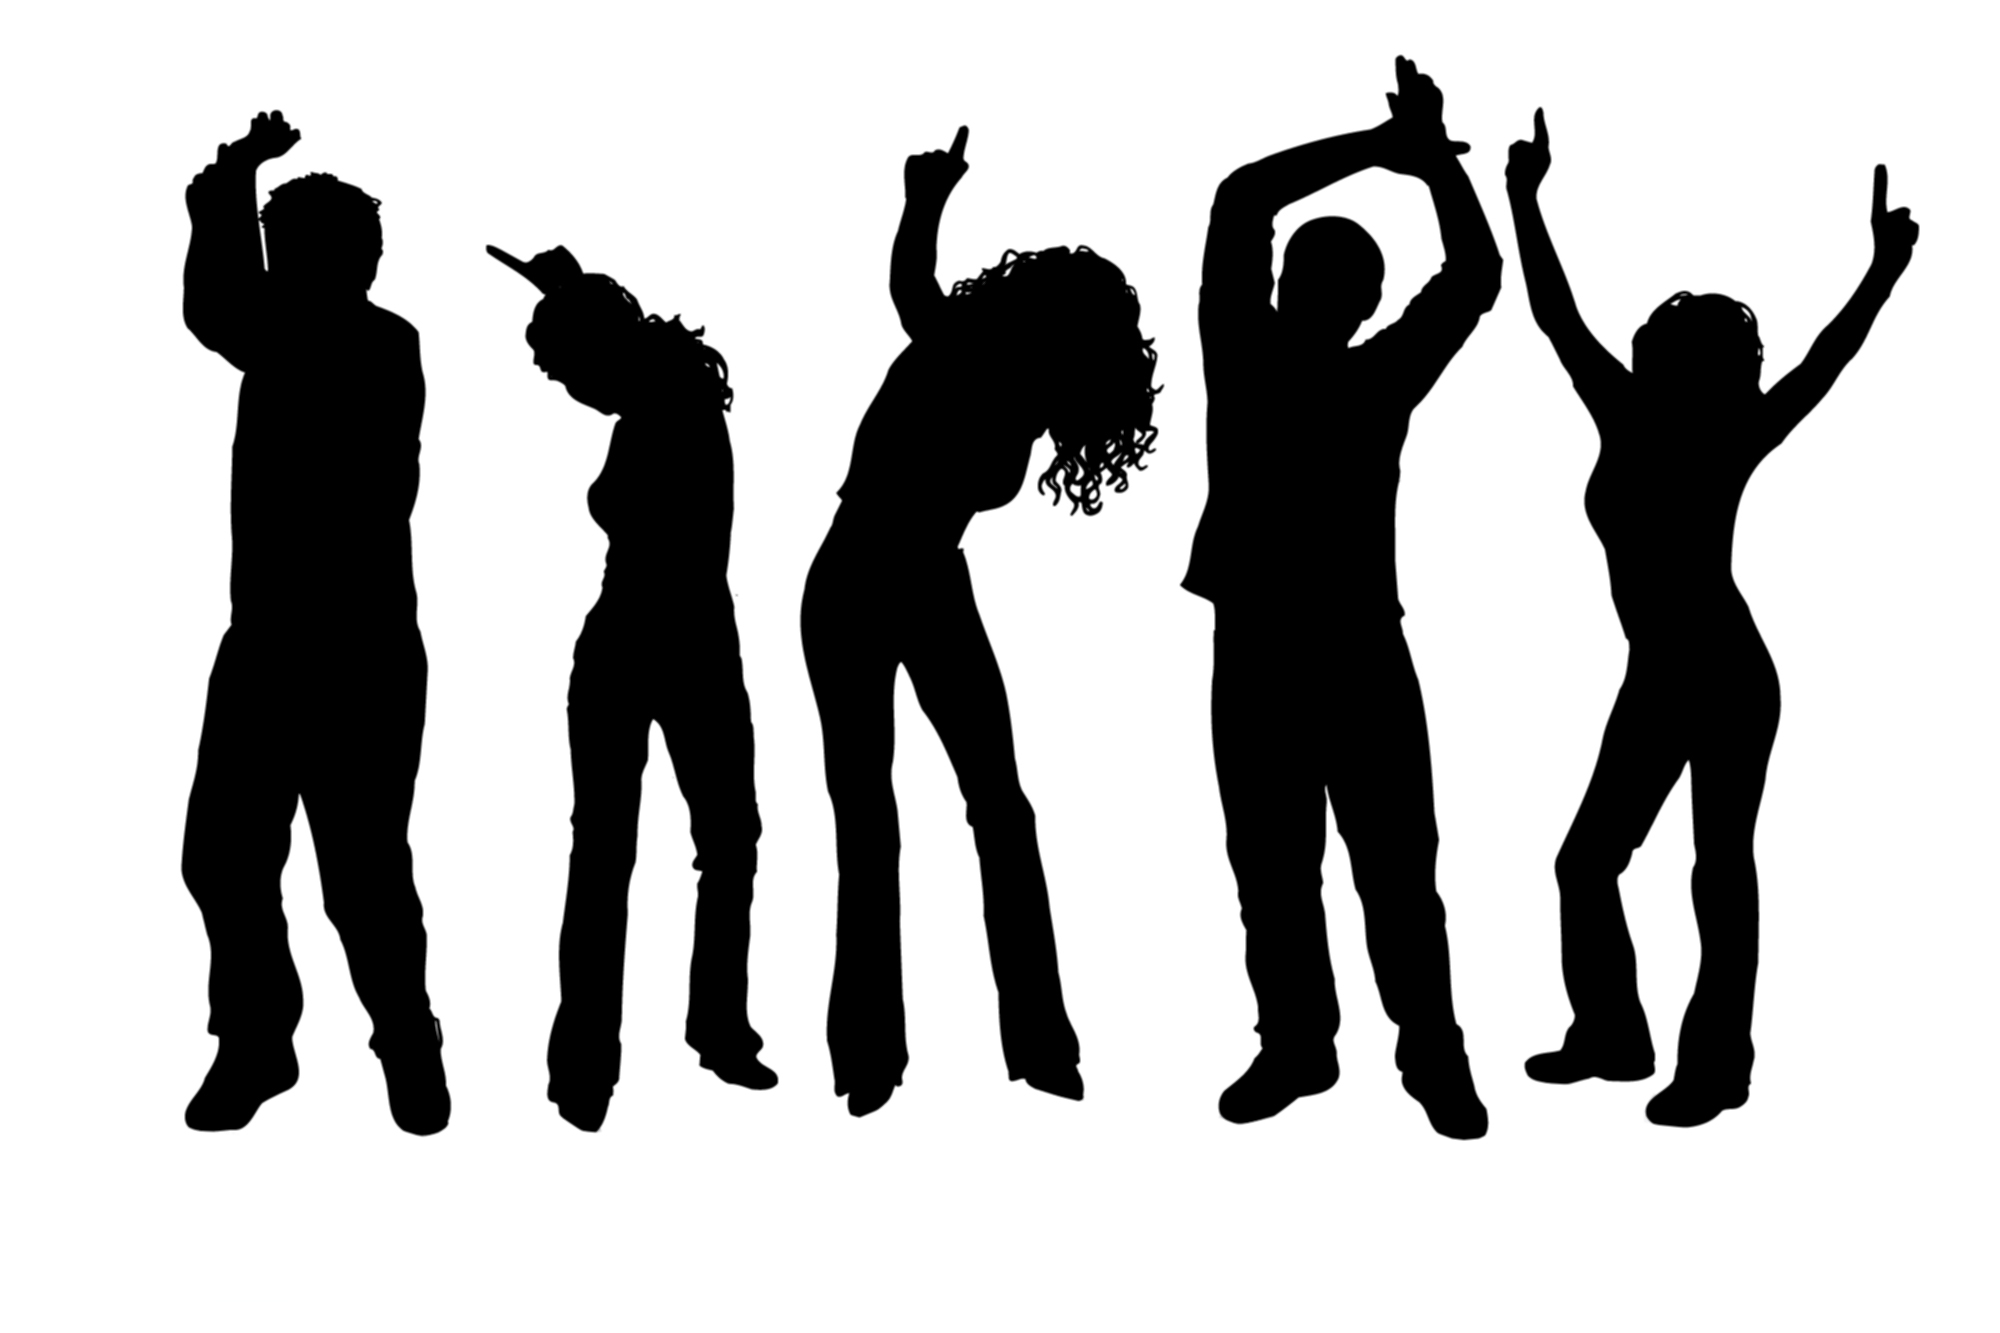 Dance Clip Art Dance Party Jpg-Dance Clip Art Dance Party Jpg-6